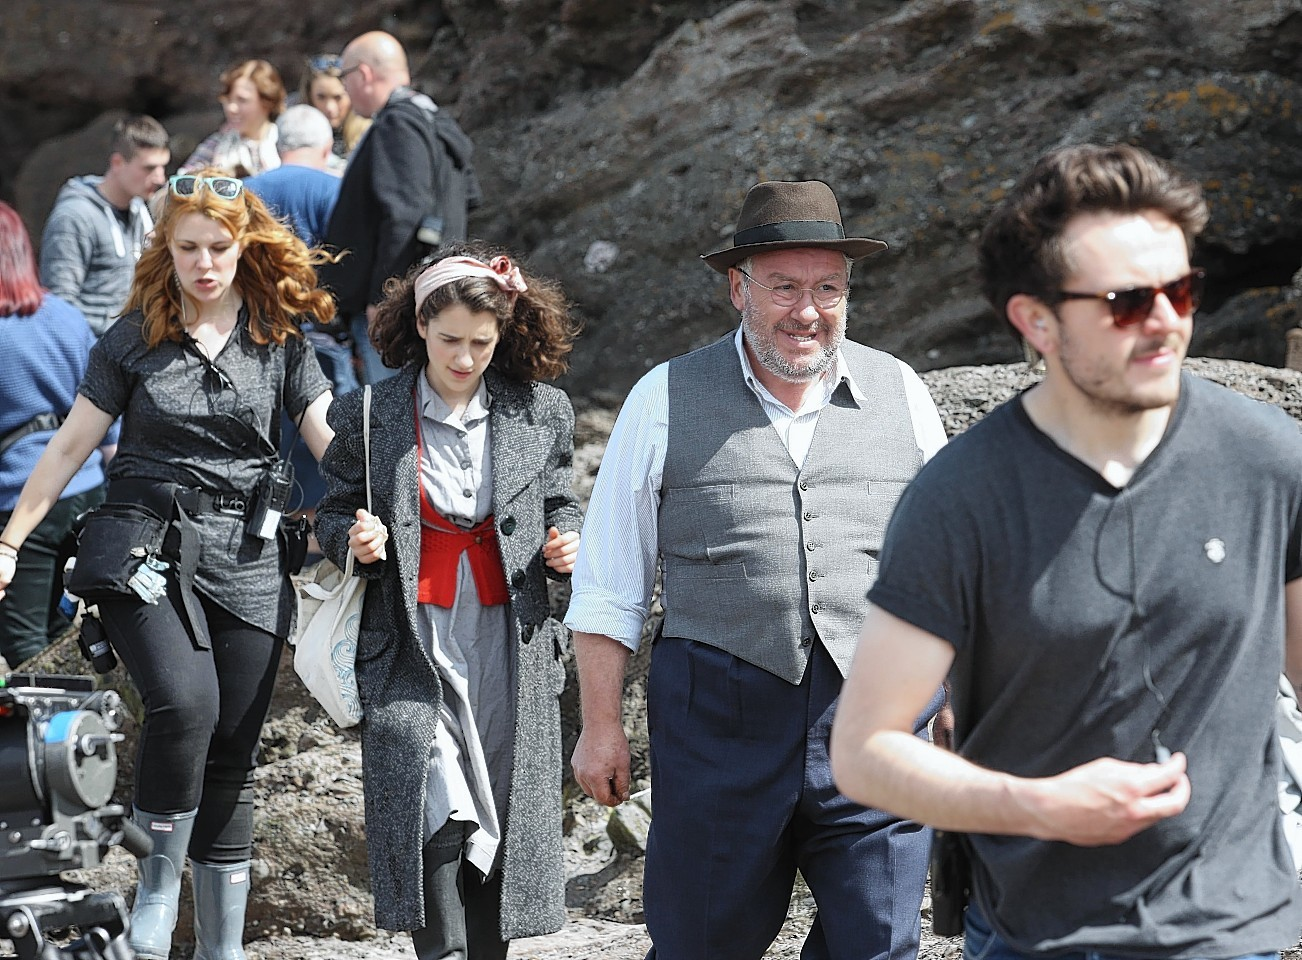 Pictures of the beginning of filming of Whisky Galore  at Portsoy